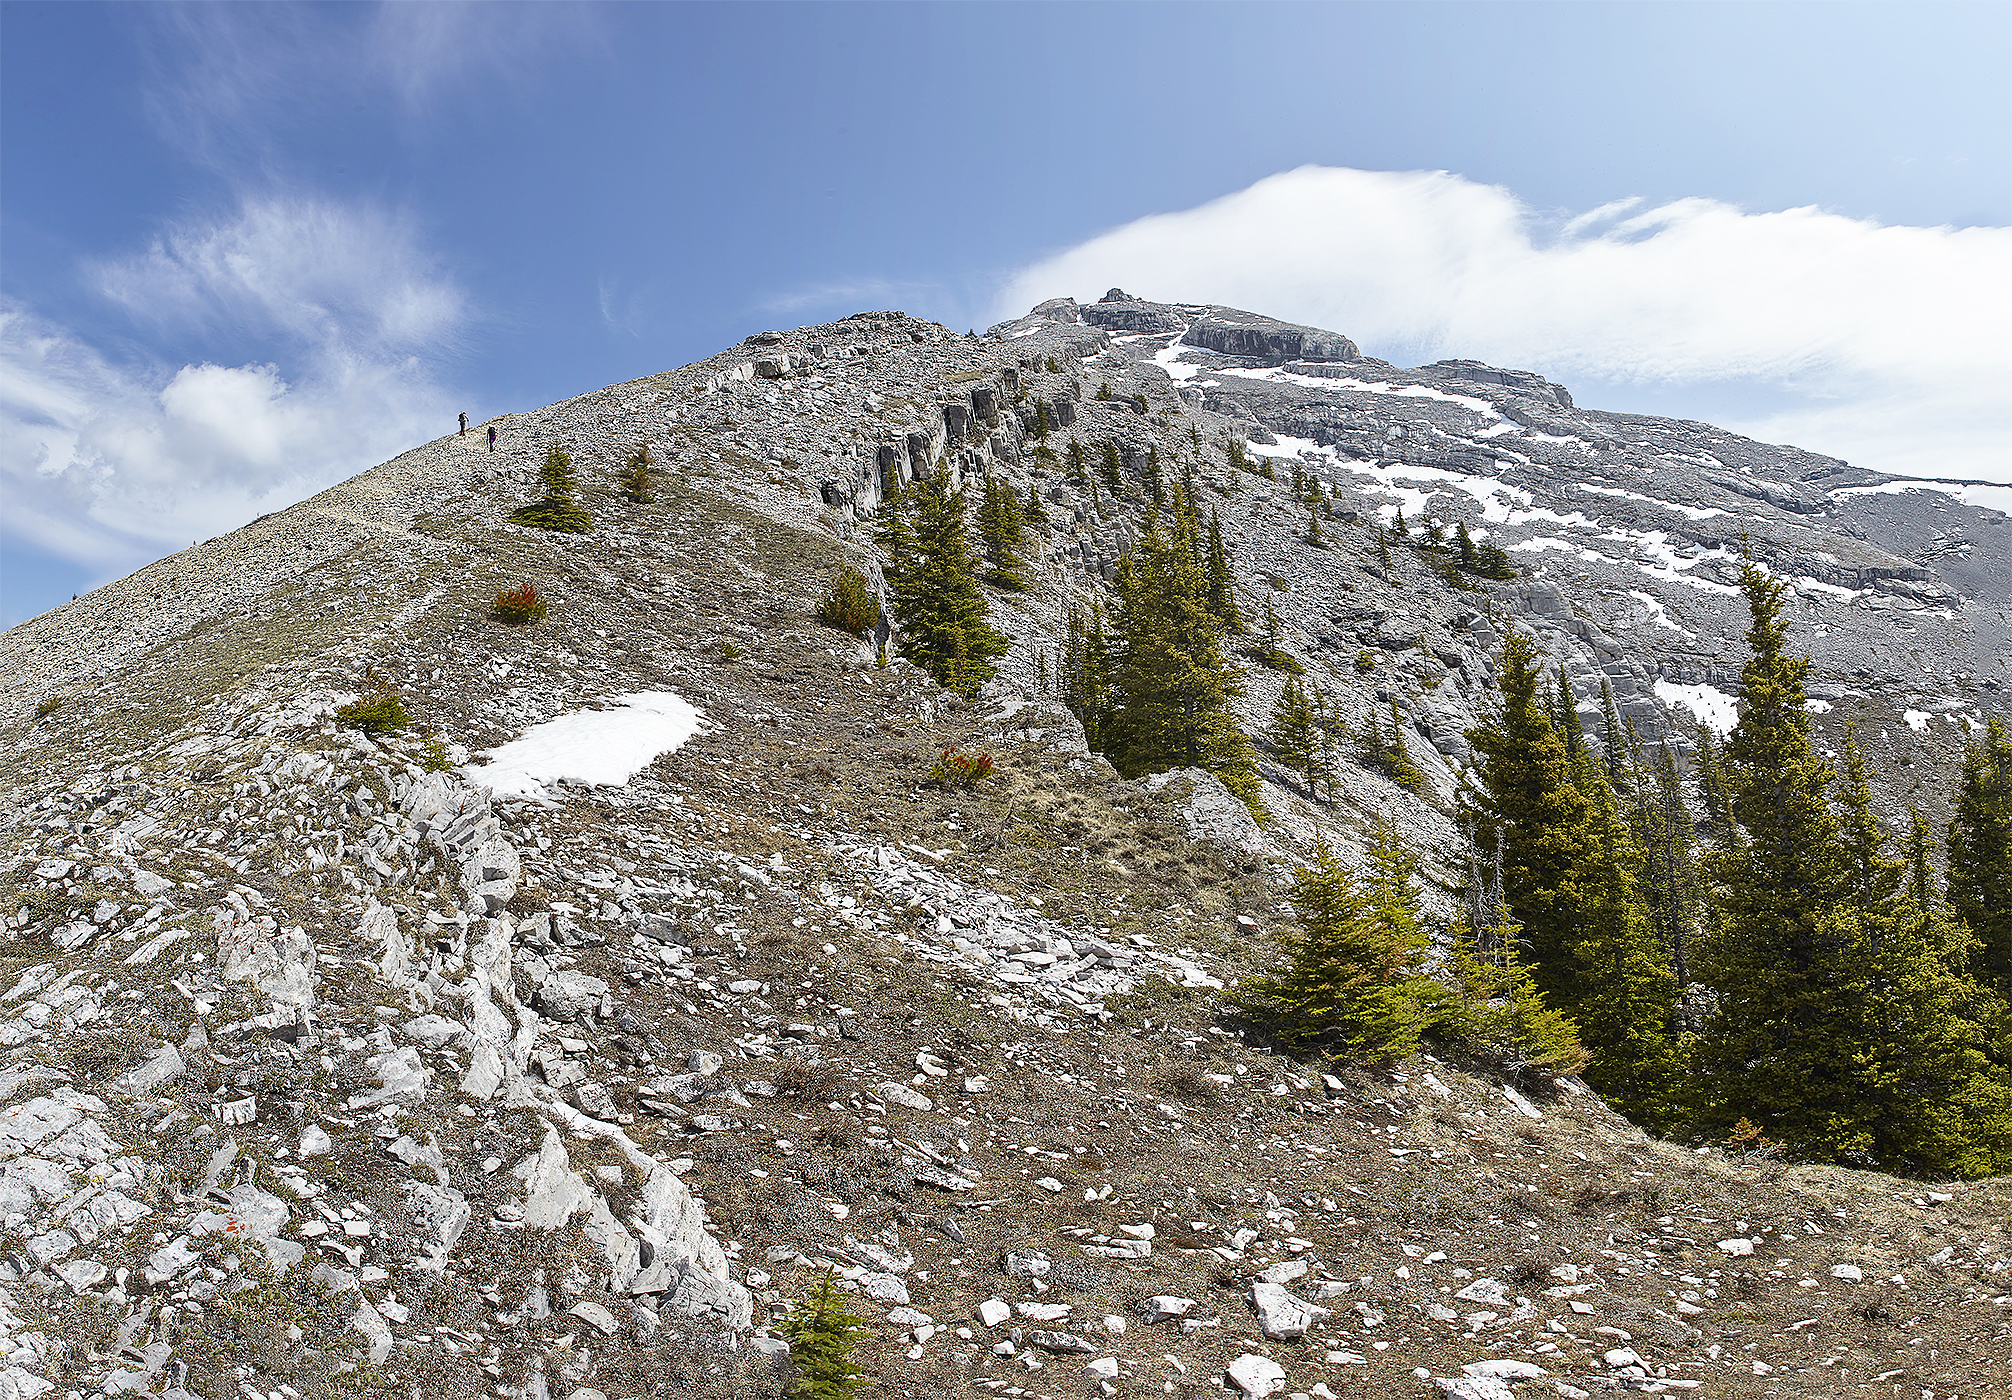 The ridge as seen from near the tree line.